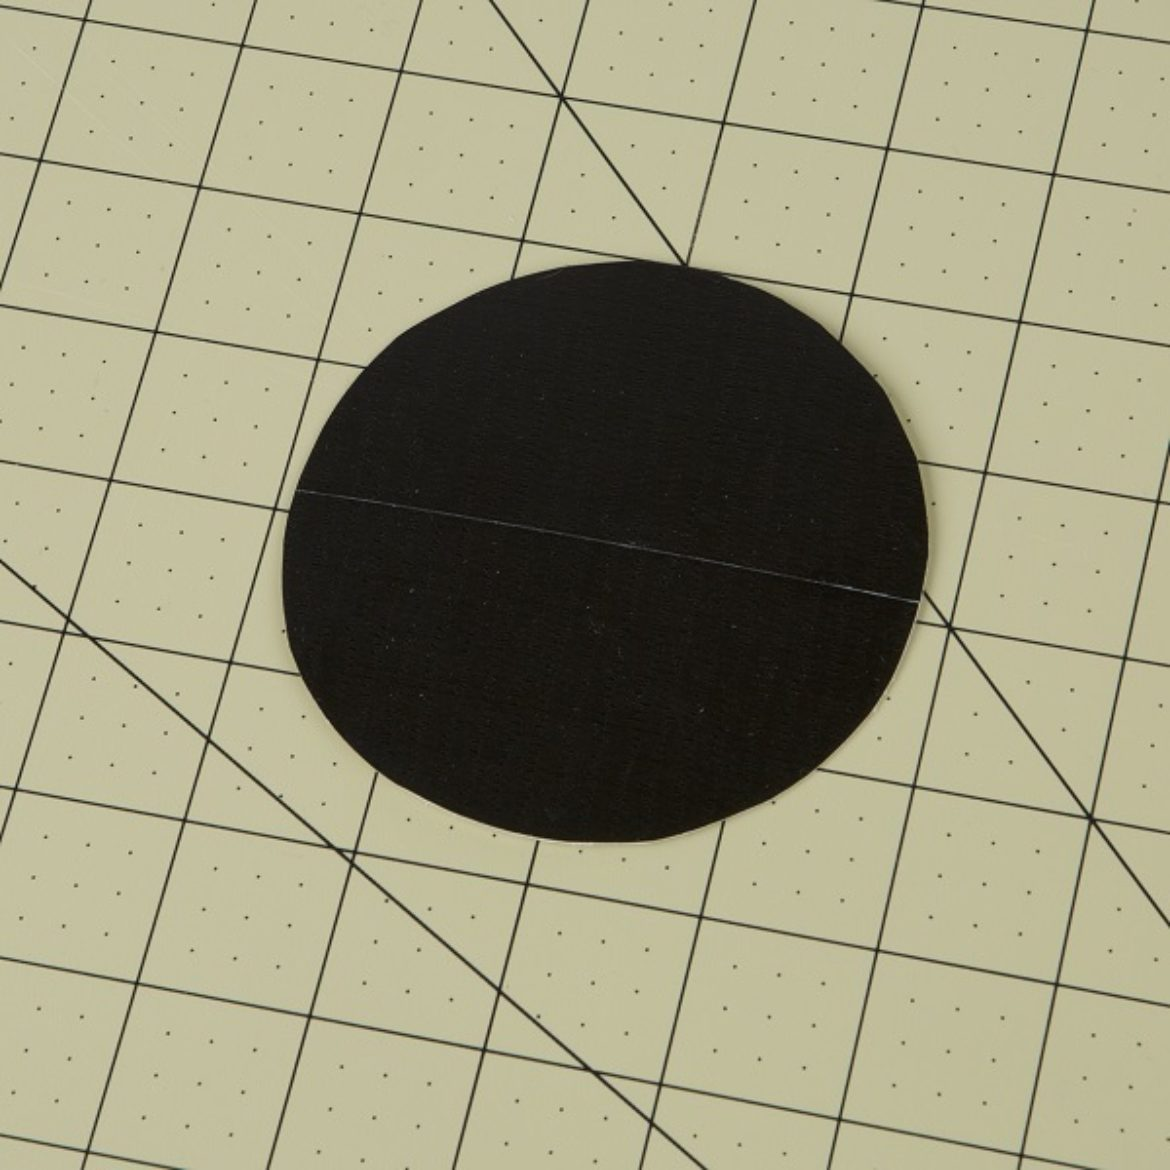 circle from the previous step covered in black Duck Tape